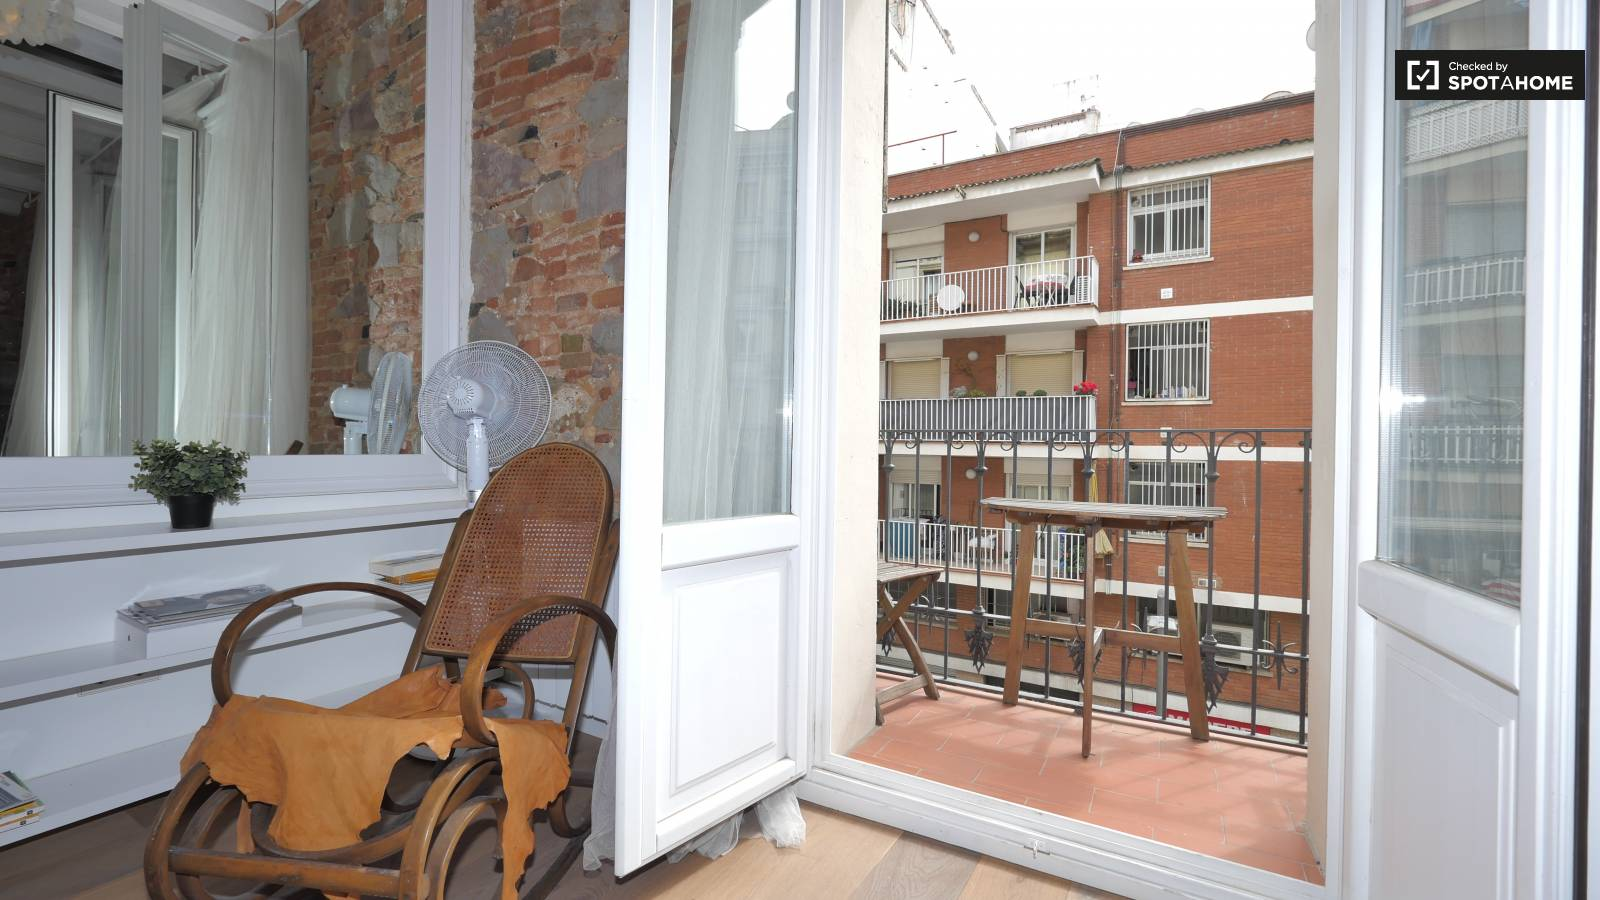 1 Bedroom Apartment For Rent In Poble Sec Barcelona Ref 235256 Spotahome